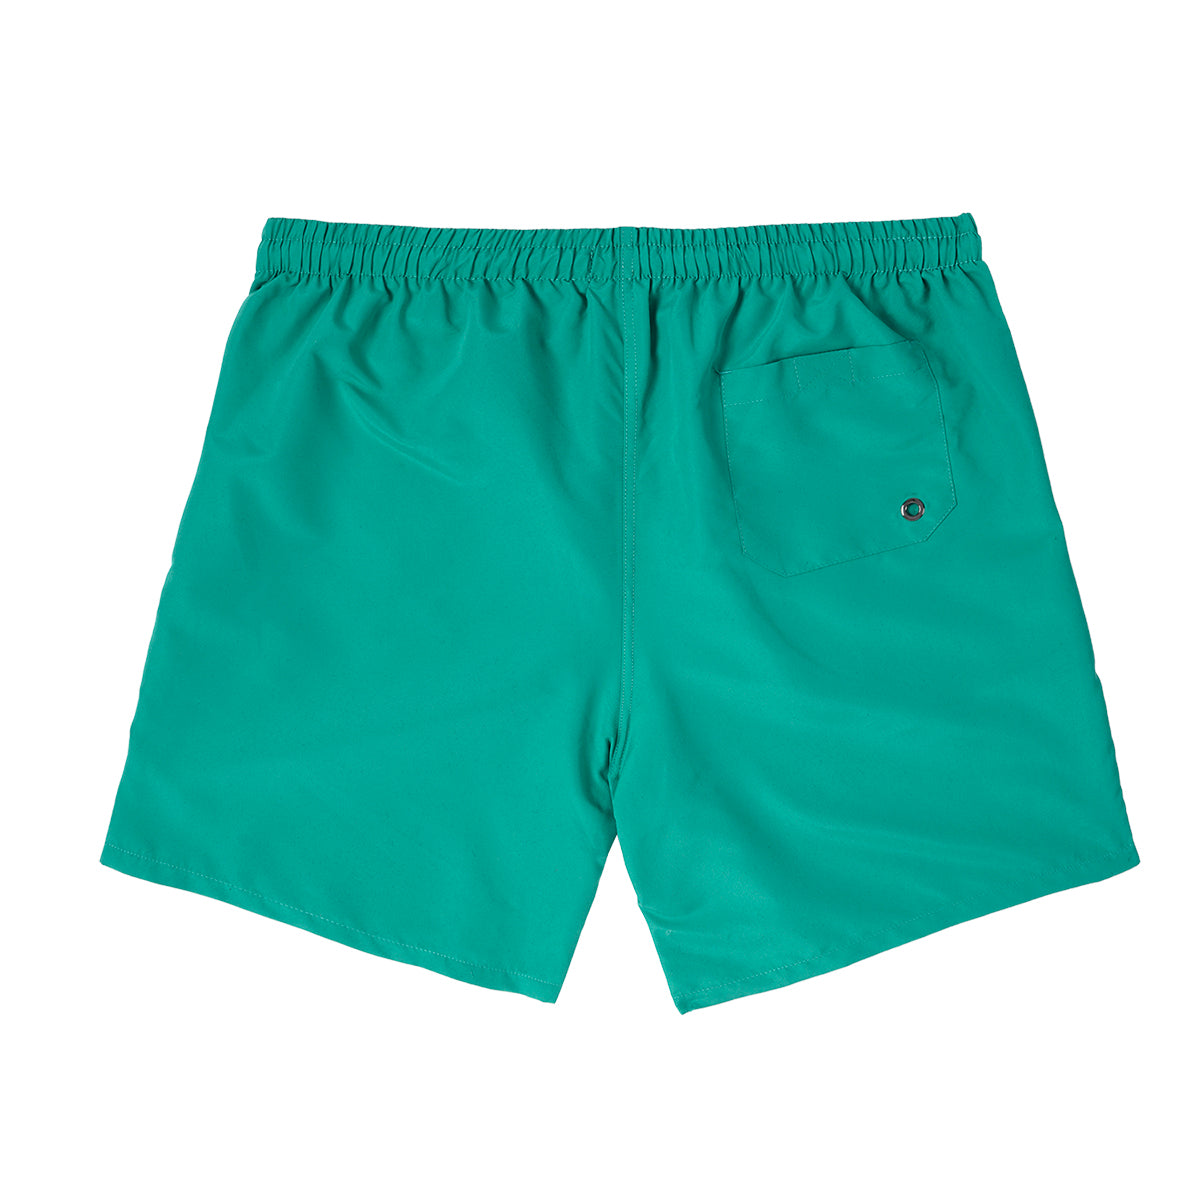 "MAGENTA SKATEBOARDS - Nylon Shorts ""Green"""